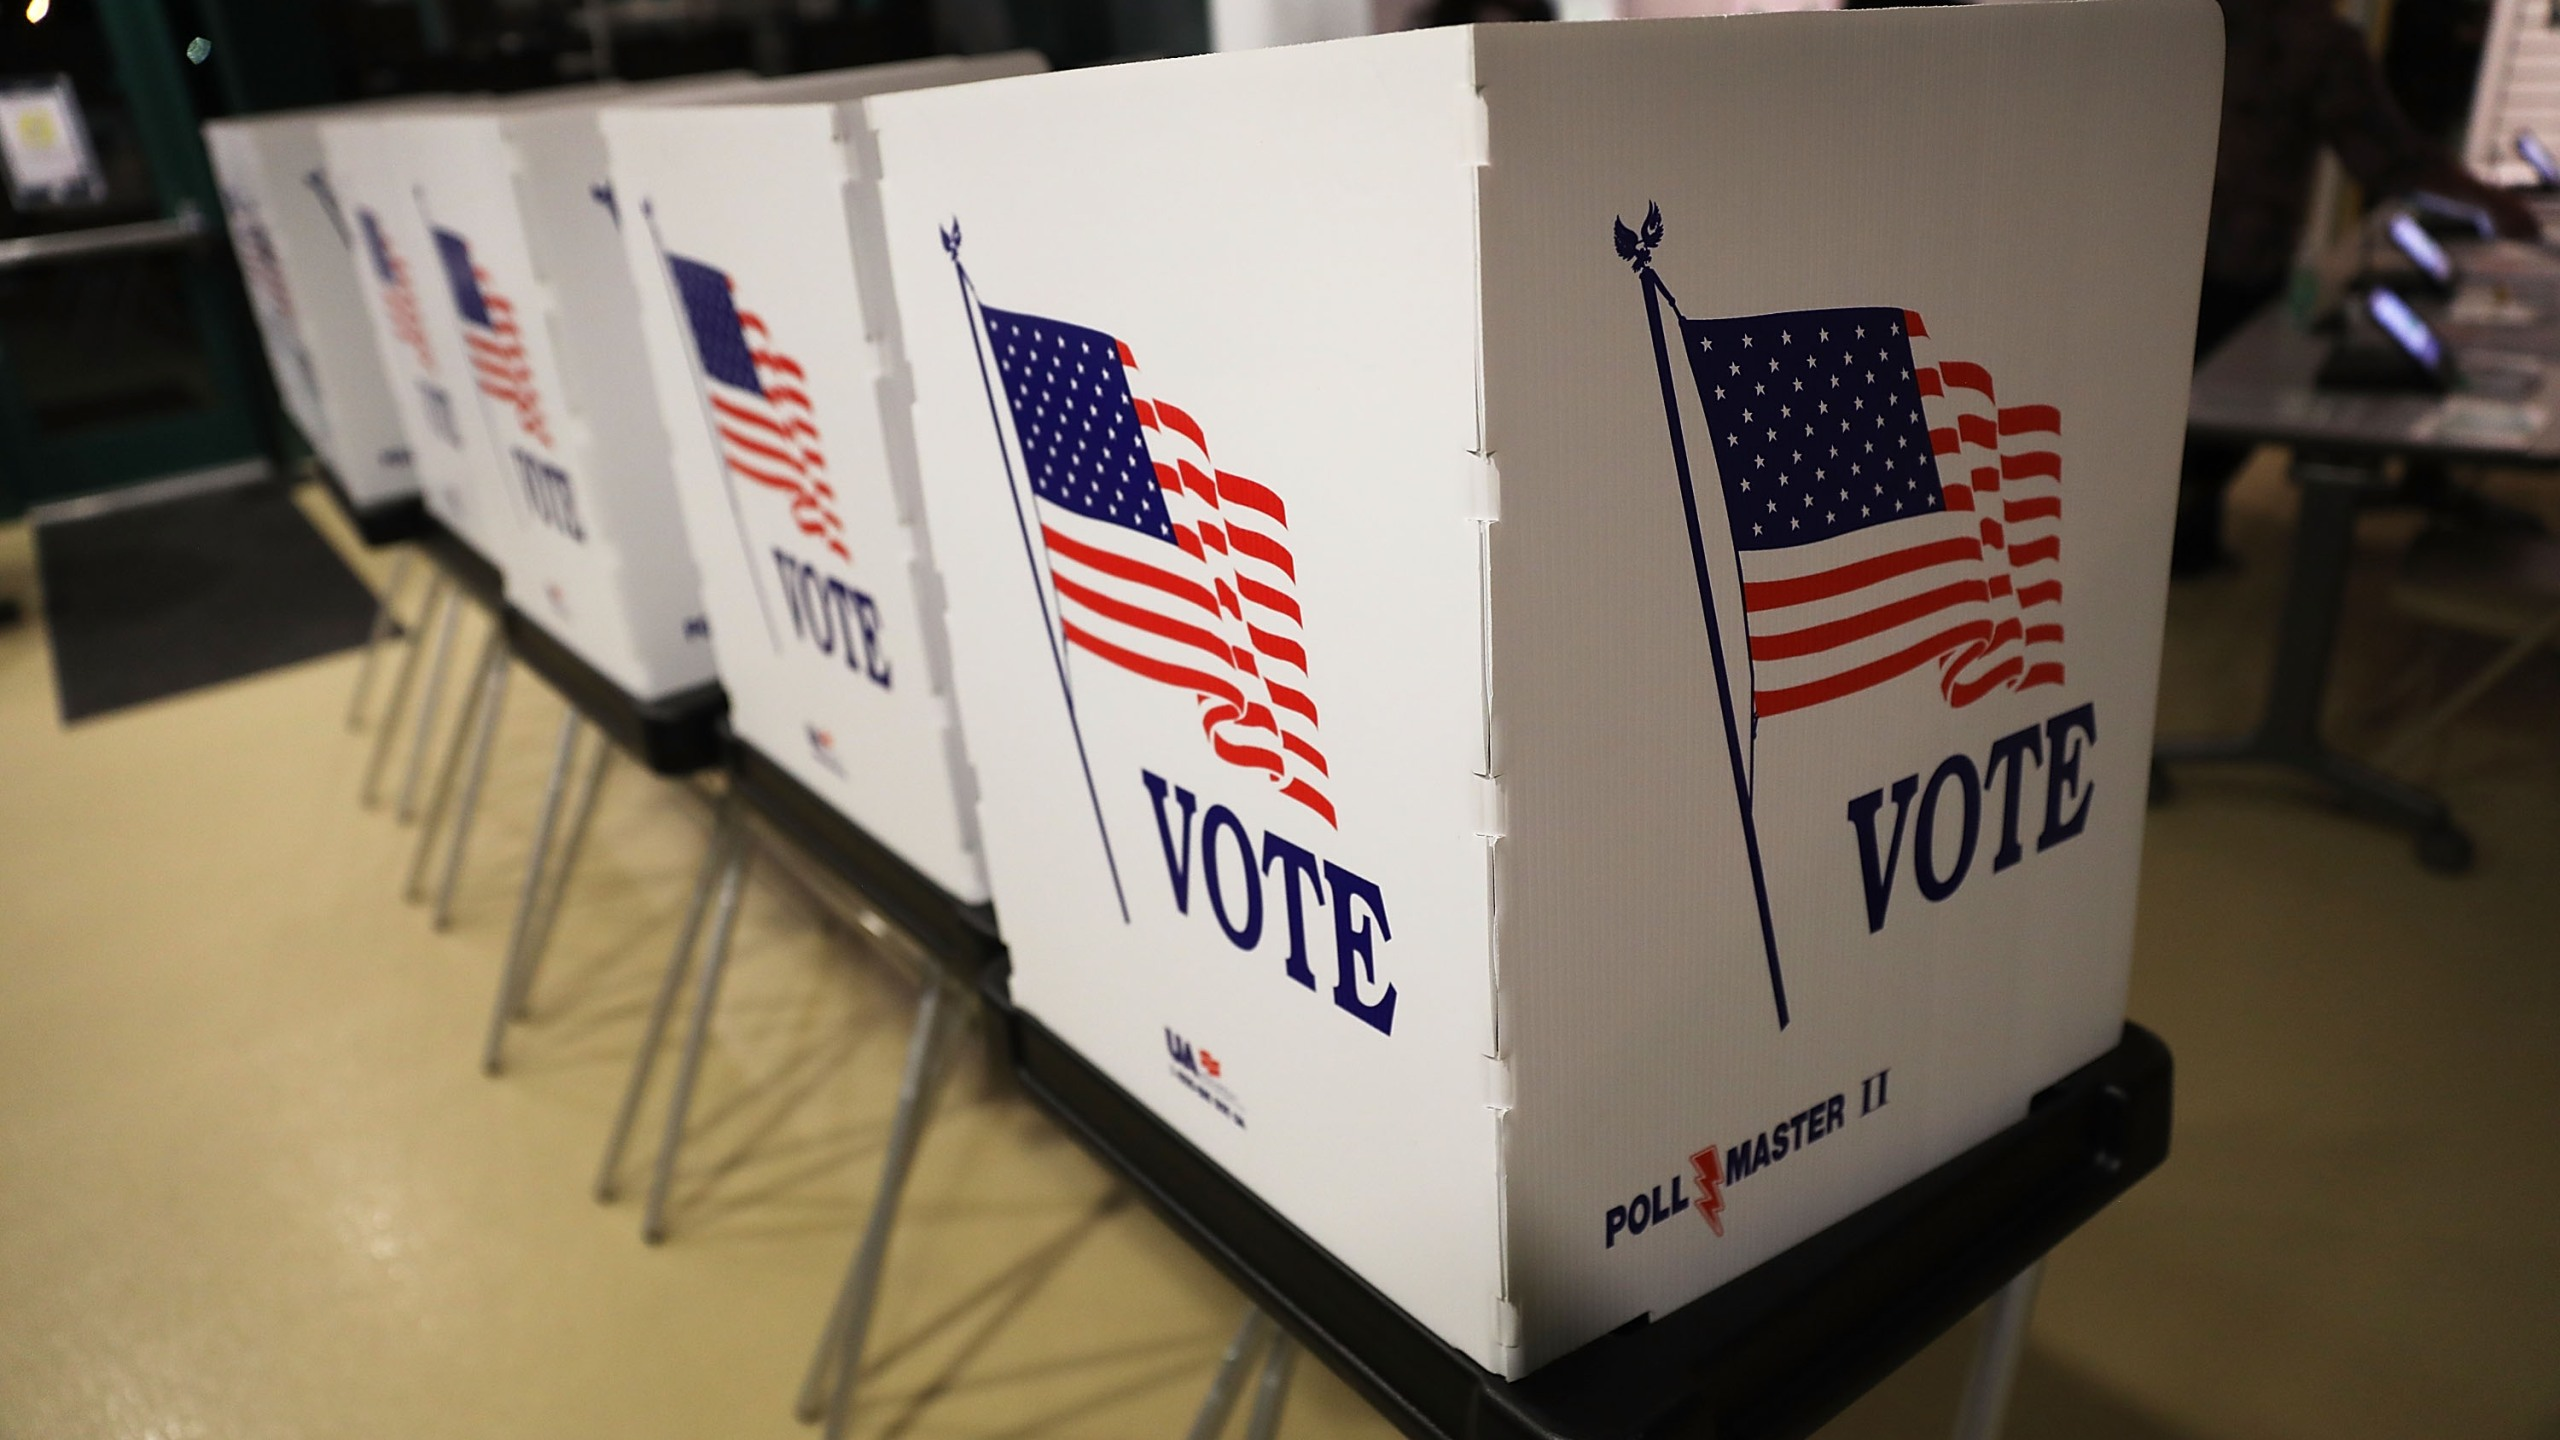 Voting Booth__1540563980238